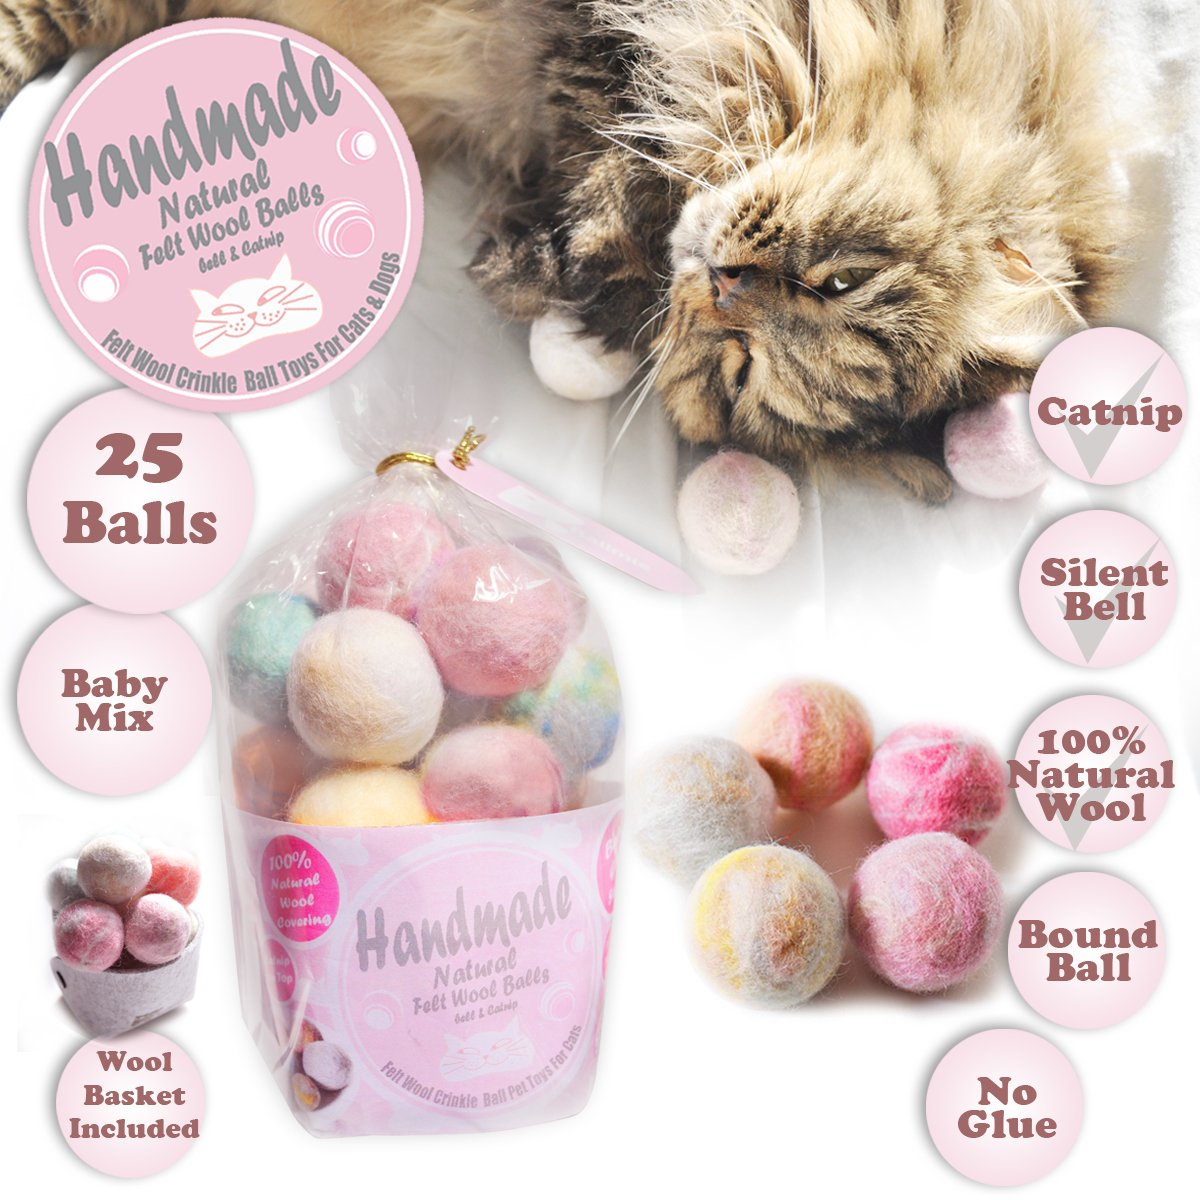 Ballmie Felt Wool Cat Toys Ball with catnip and bell, Natural Handmade (Baby Mix (25 Units)) by Ballmie (Image #1)